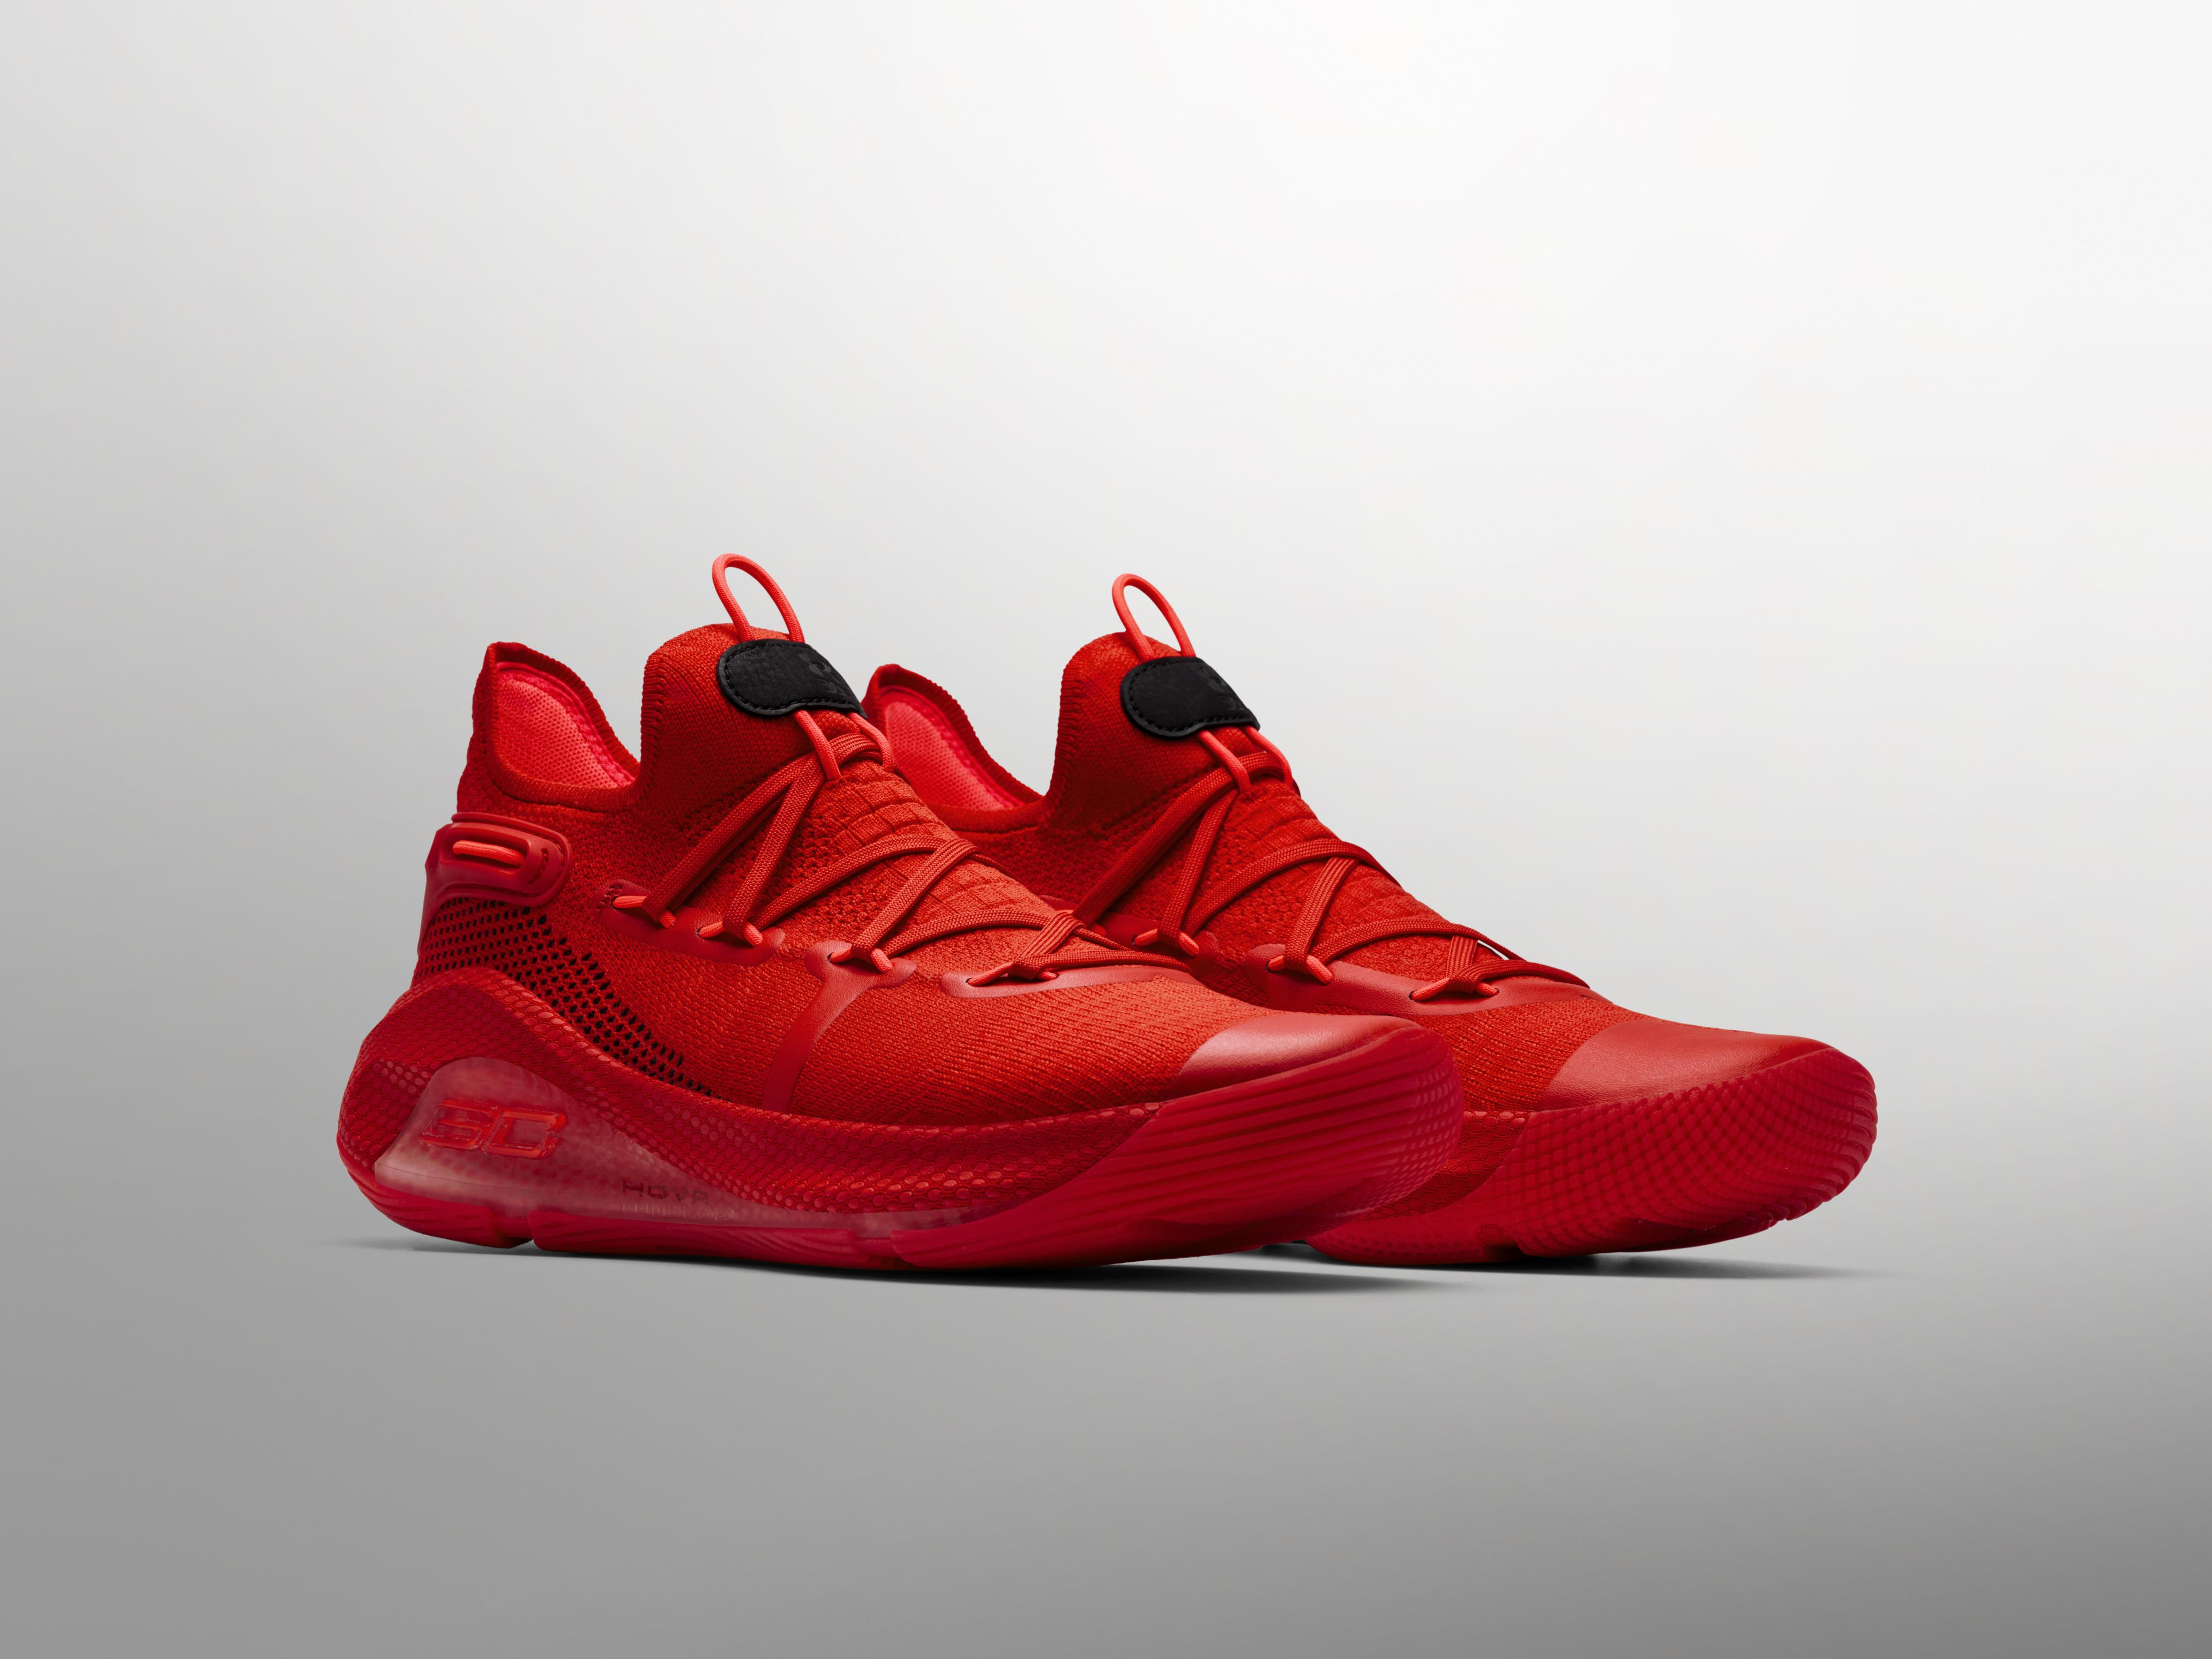 Curry 6 Heart of the Town colorway